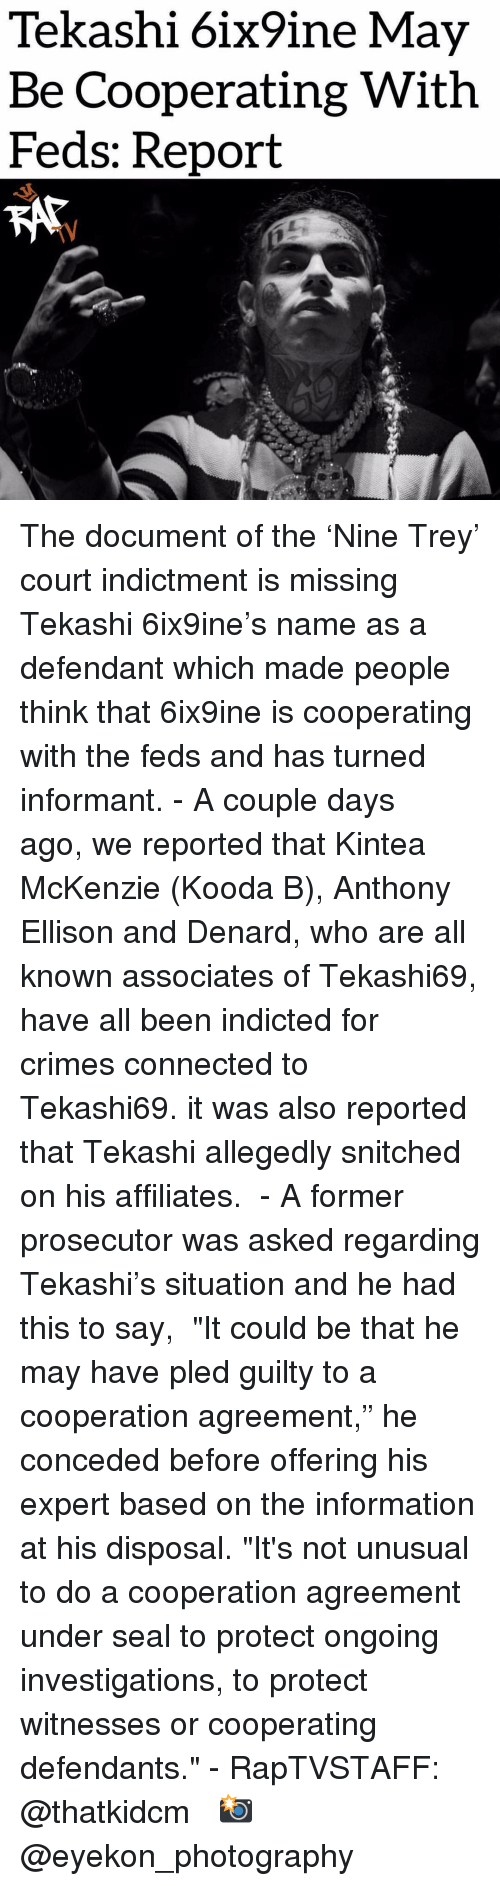 """Allegedly: Tekashi 6ix9ine May  Be Cooperating With  Feds: Report  TV The document of the 'Nine Trey' court indictment is missing Tekashi 6ix9ine's name as a defendant which made people think that 6ix9ine is cooperating with the feds and has turned informant. - A couple days ago, we reported that Kintea McKenzie (Kooda B), Anthony Ellison and Denard, who are all known associates of Tekashi69, have all been indicted for crimes connected to Tekashi69. it was also reported that Tekashi allegedly snitched on his affiliates.  - A former prosecutor was asked regarding Tekashi's situation and he had this to say,  """"It could be that he may have pled guilty to a cooperation agreement,"""" he conceded before offering his expert based on the information at his disposal. """"It's not unusual to do a cooperation agreement under seal to protect ongoing investigations, to protect witnesses or cooperating defendants."""" - RapTVSTAFF: @thatkidcm  📸 @eyekon_photography"""